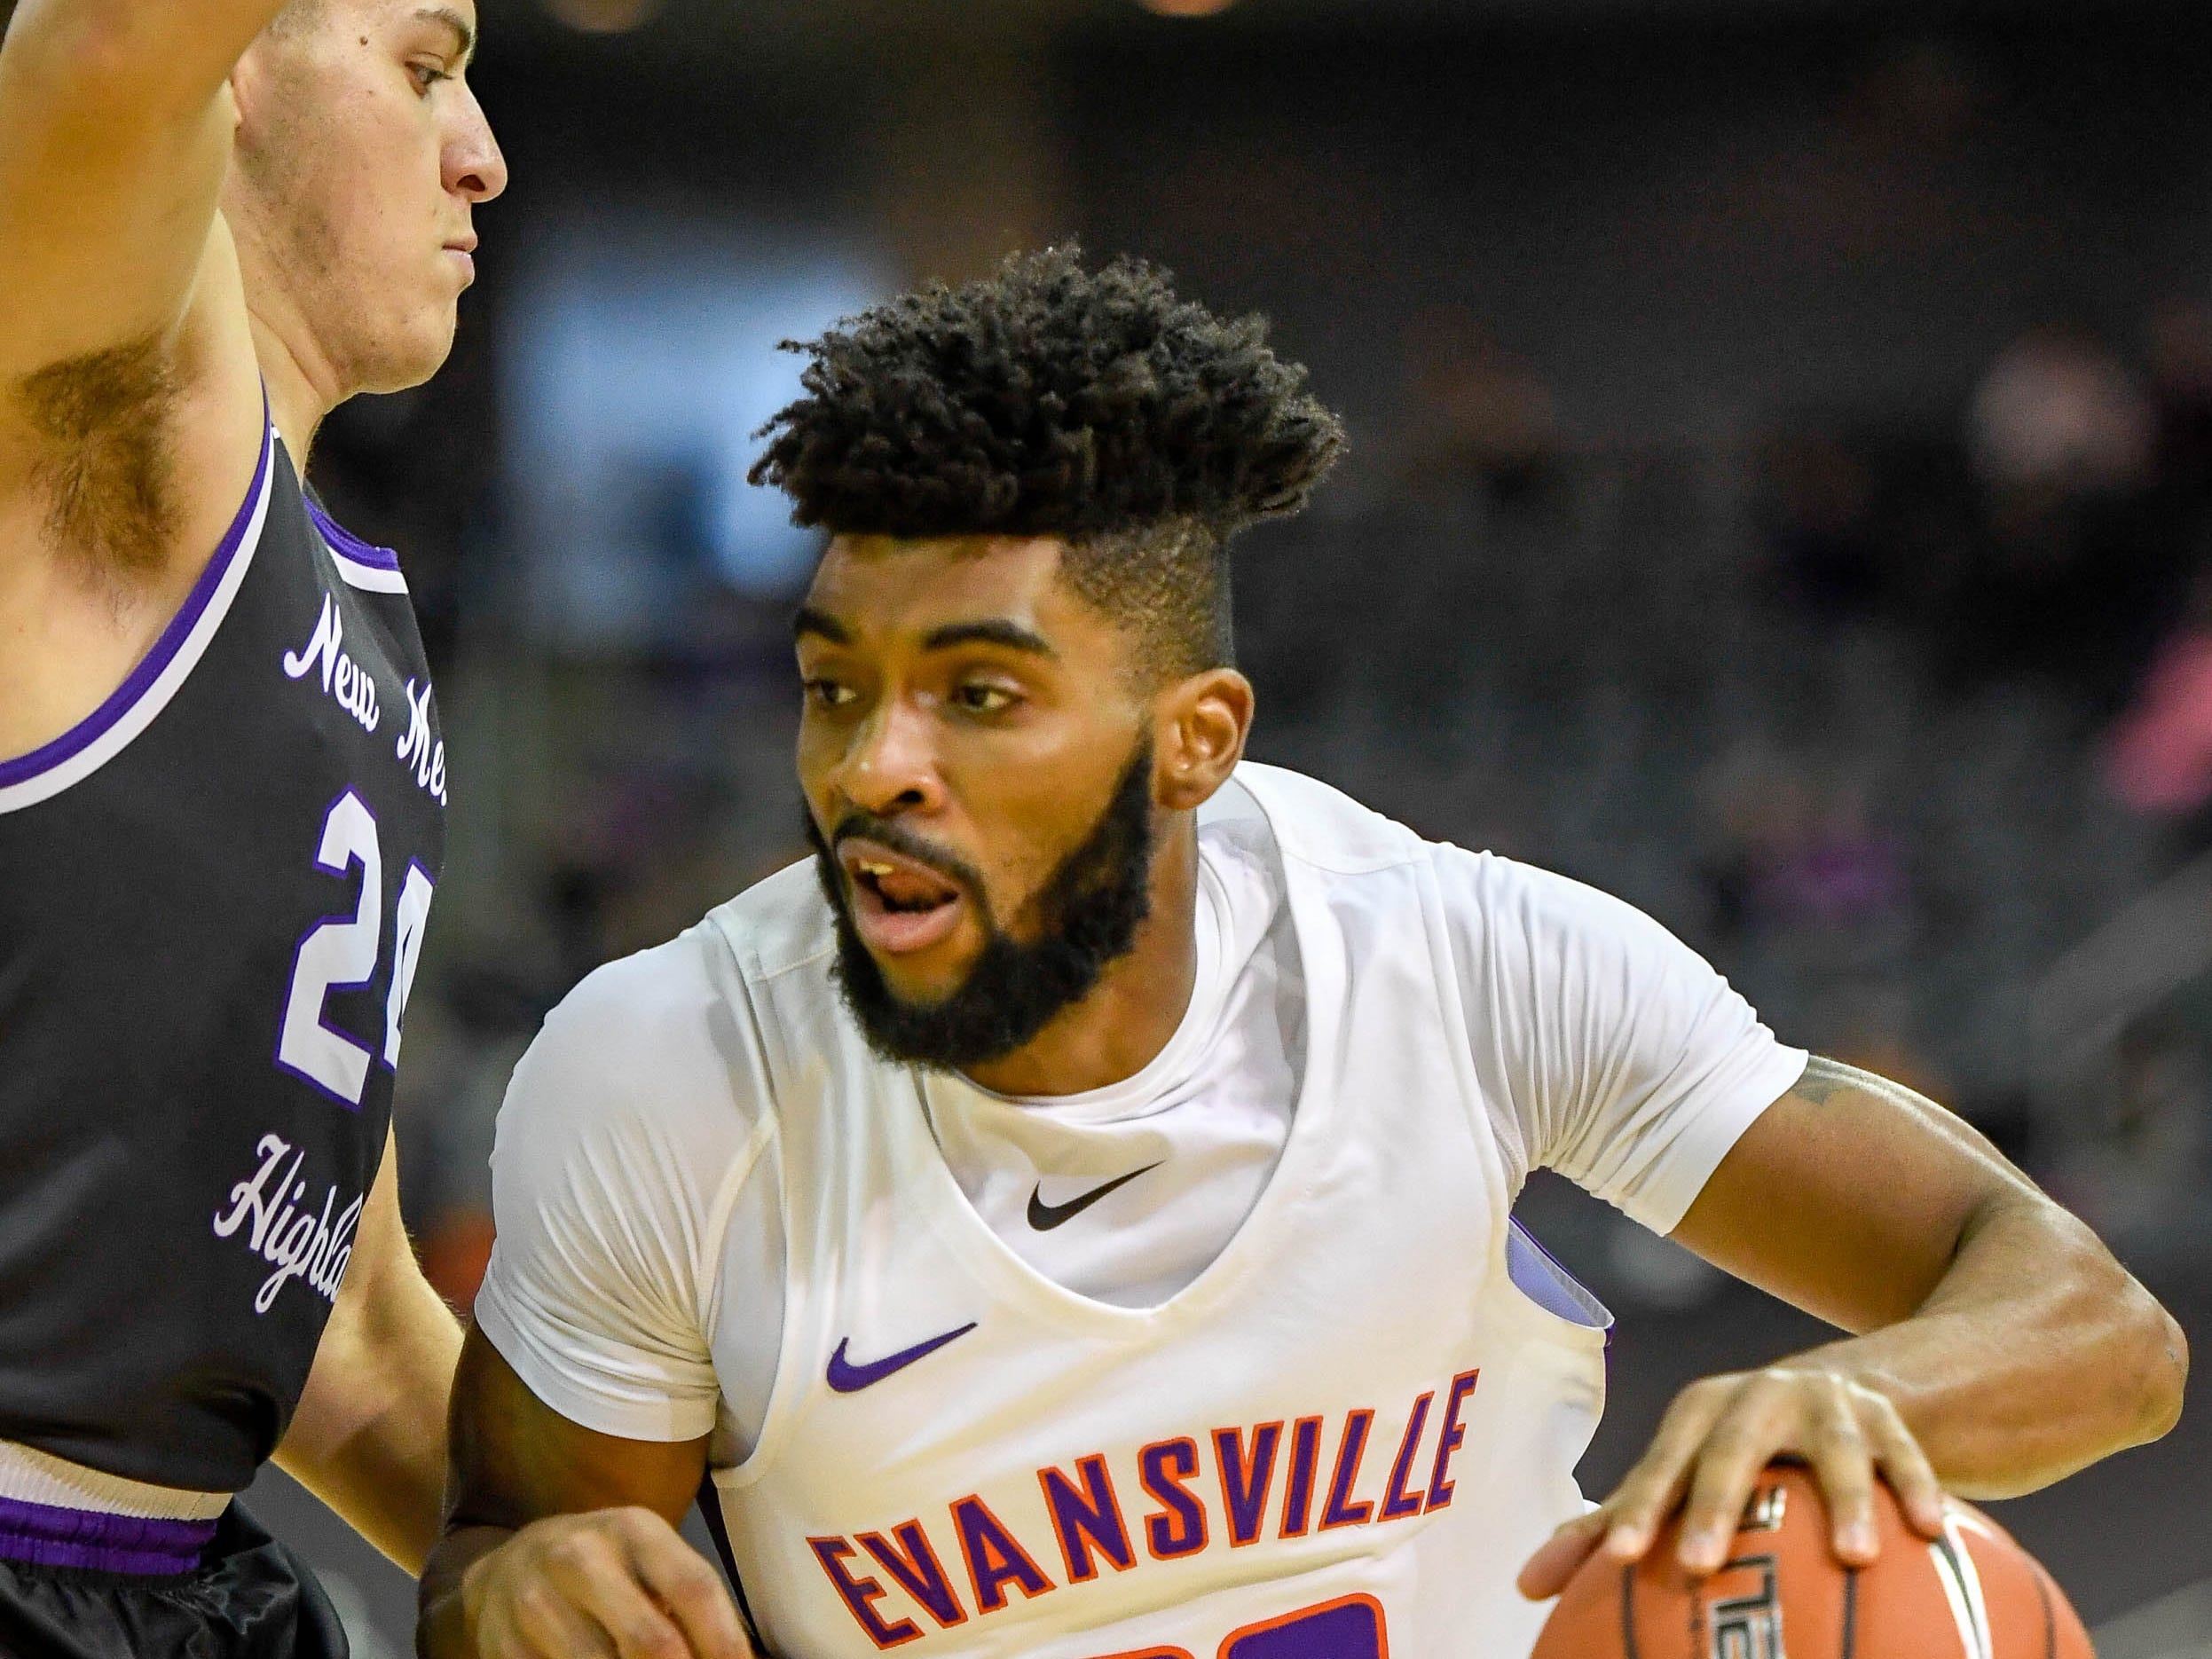 University of Evansville's K.J. Riley (33) drives against defense from New Mexico Highlands' D.J. Bustos (24) as the University of Evansville Purple Aces play the New Mexico Highlands Cowboys in a exhibition game at the Ford Center Saturday, November 3, 2018.